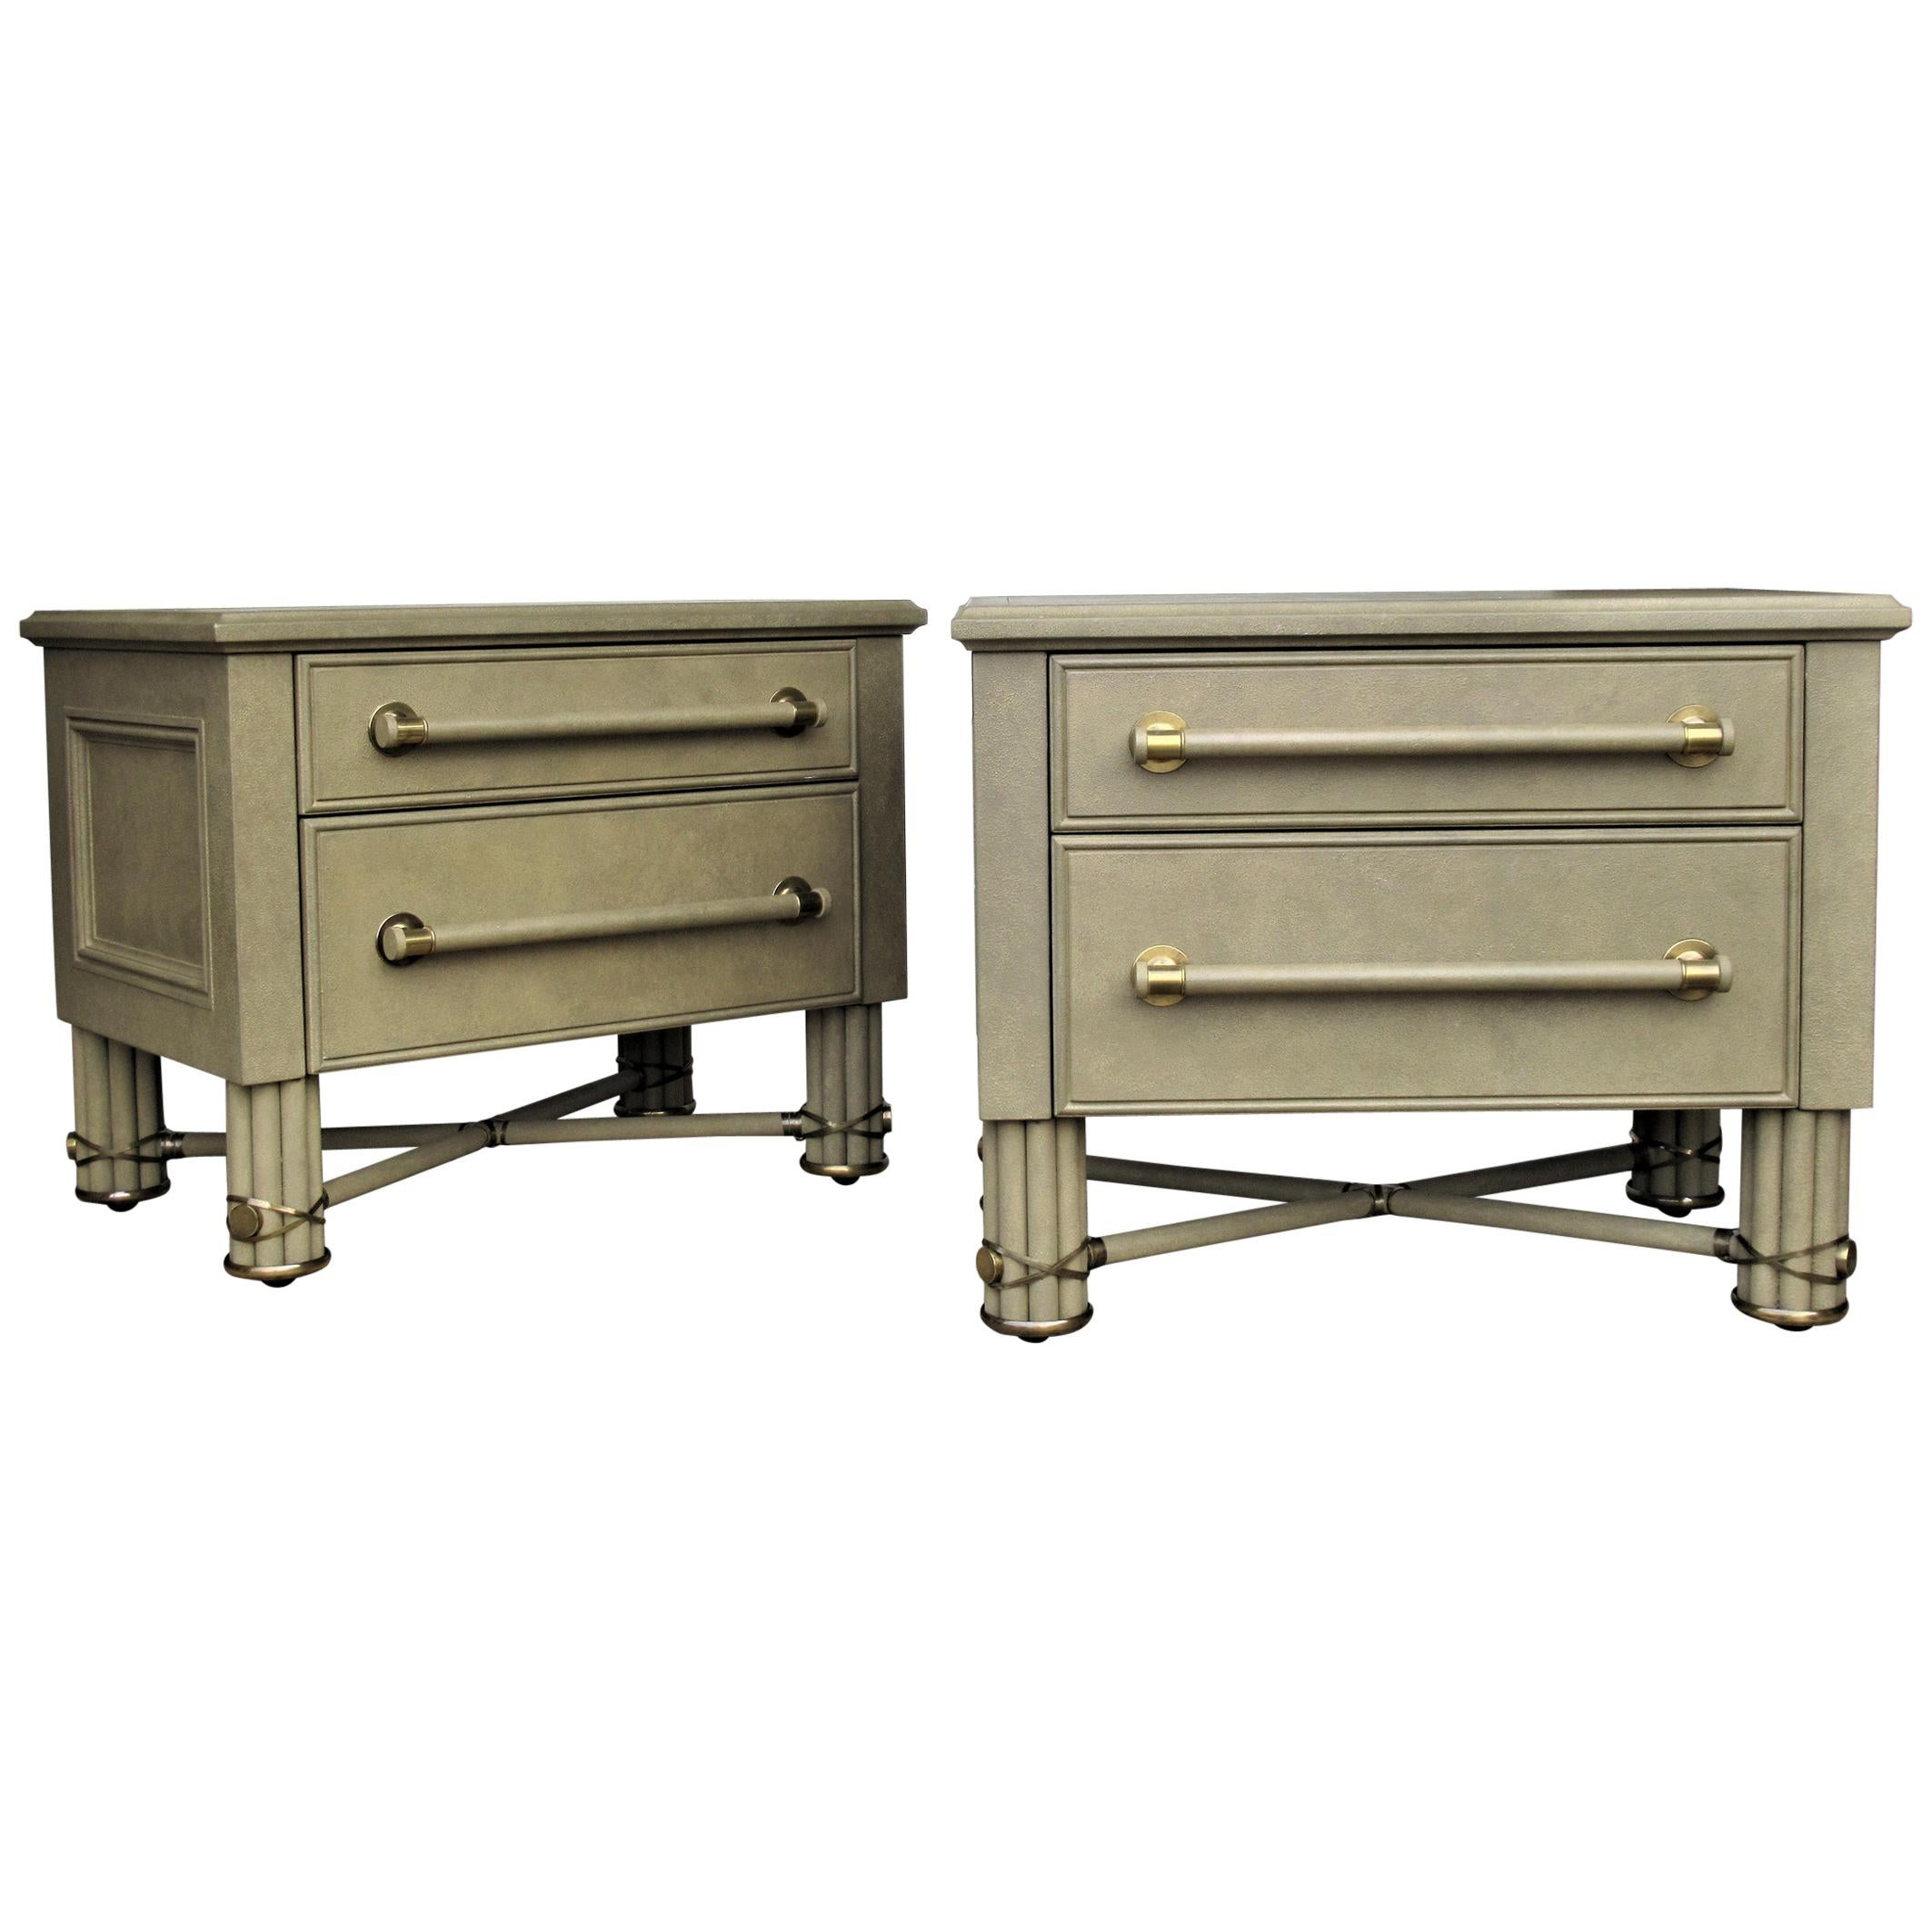 Tommi Parzinger style Chests by Hart Associates